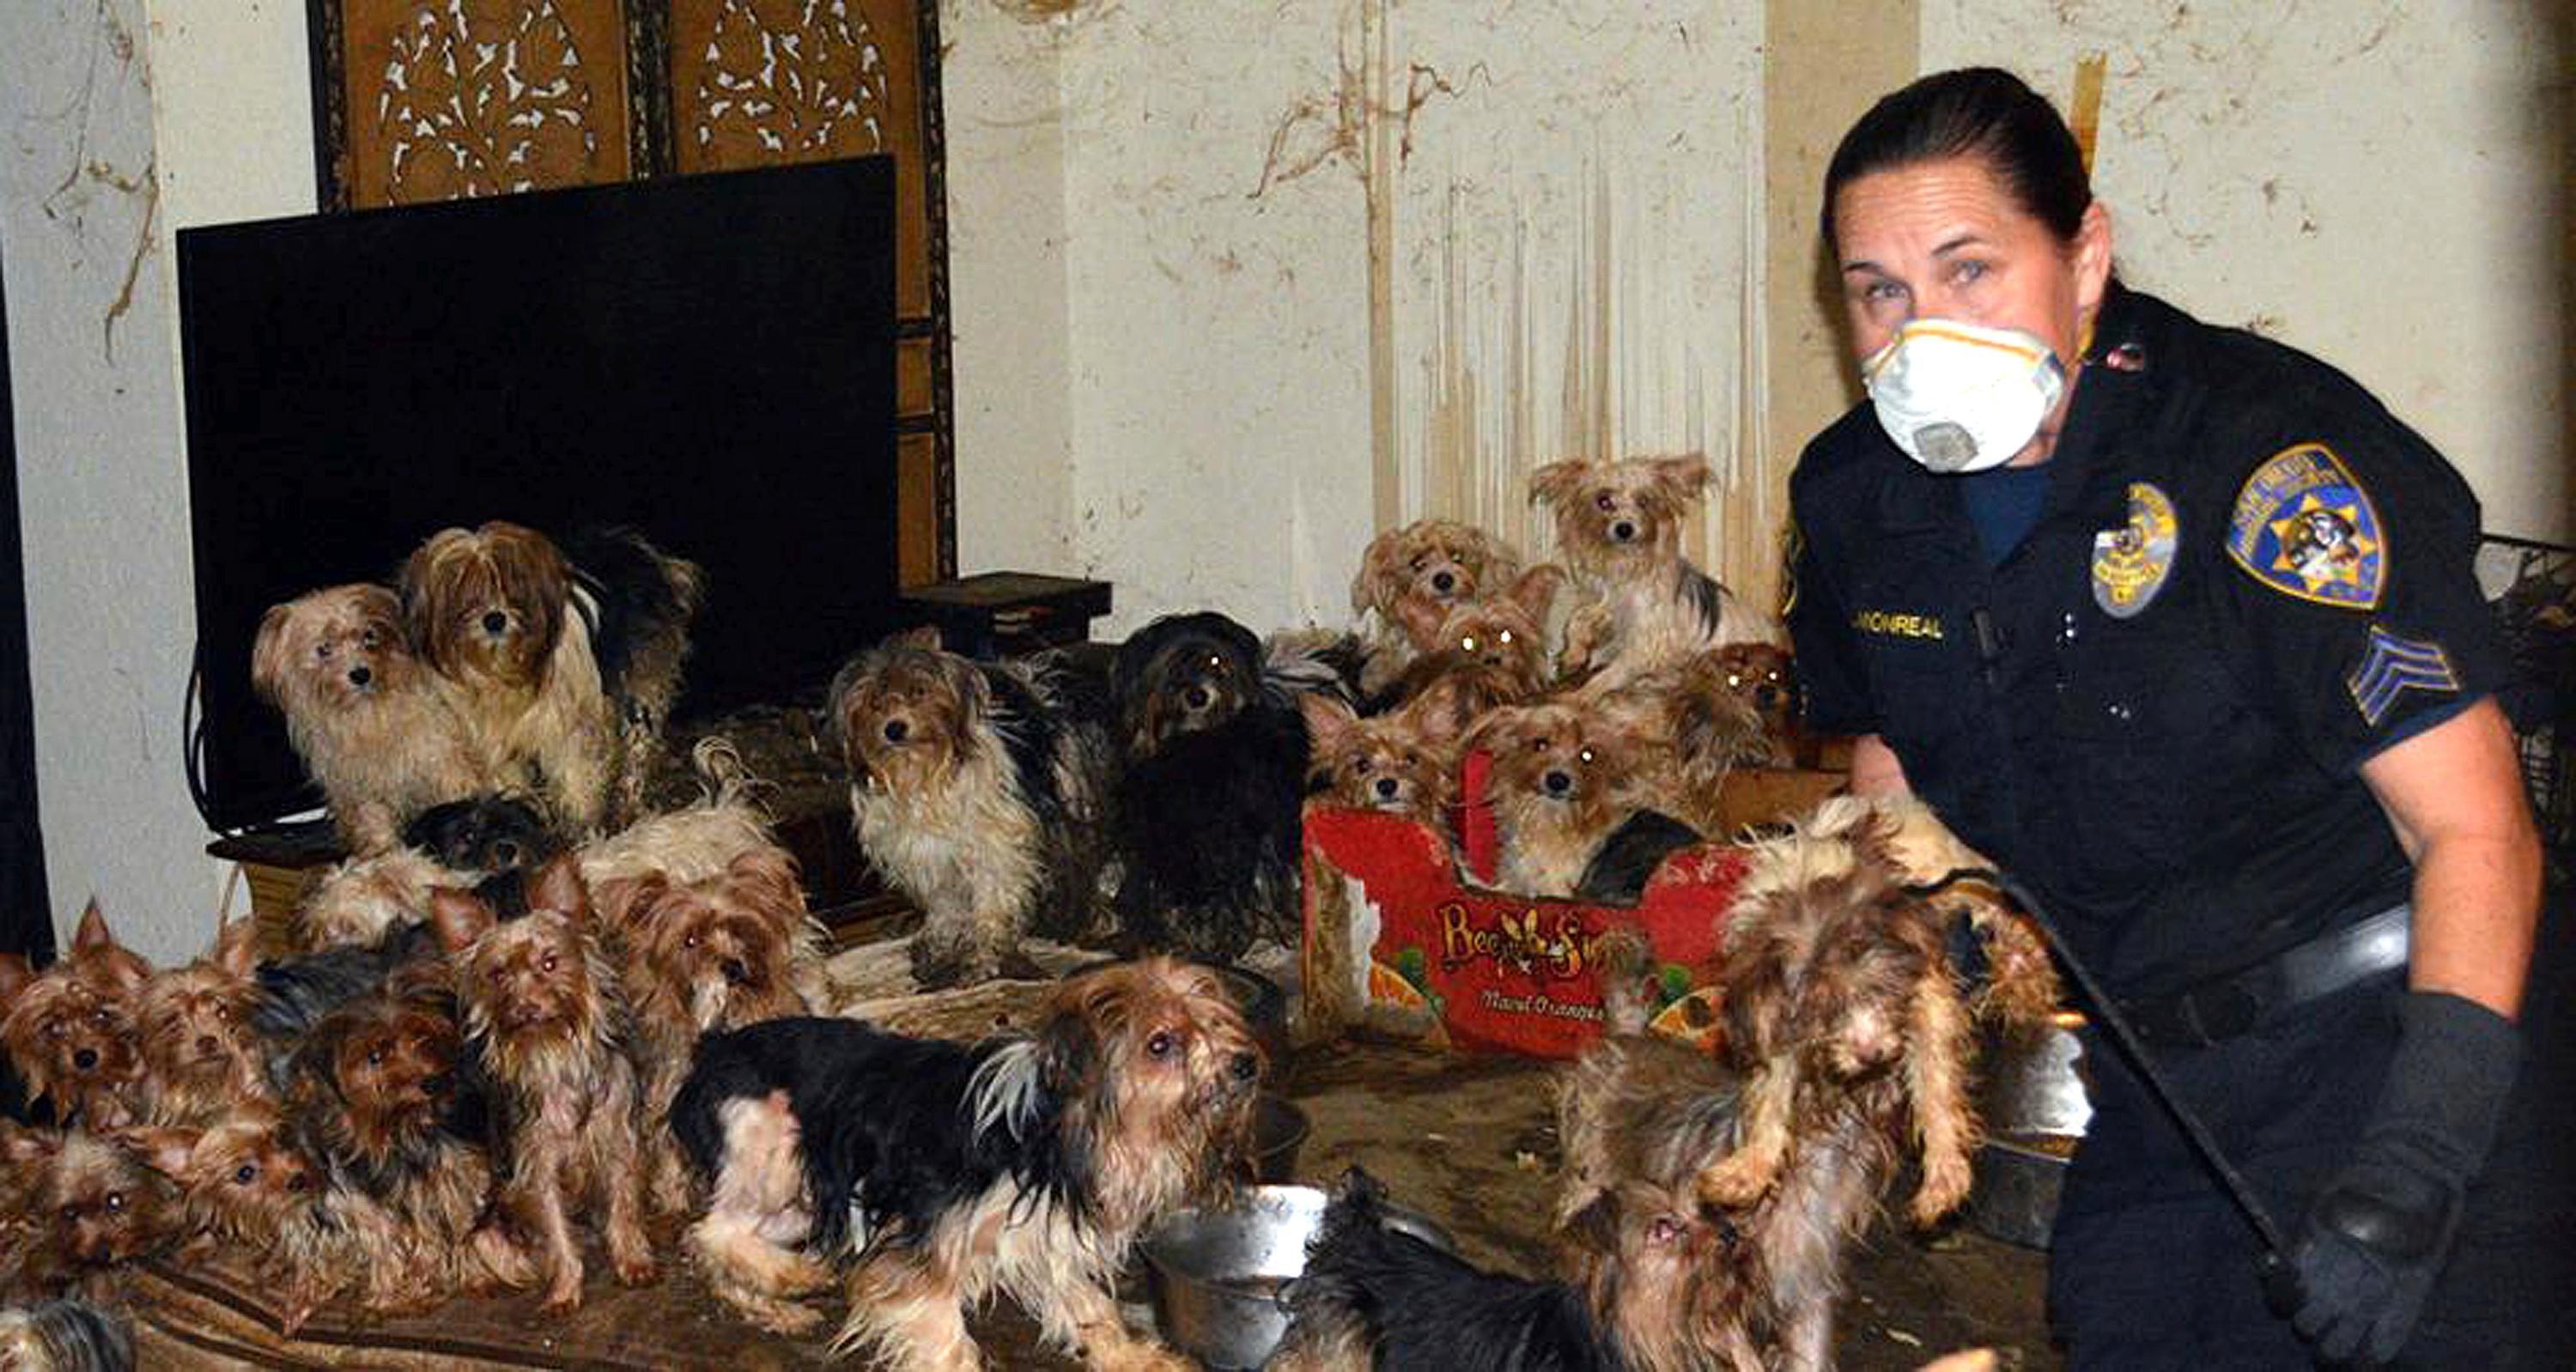 This Jan. 20, 2017, photo provided by the San Diego Humane Society shows the scene where over 170 Yorkshire terrier and Yorkie mix dogs were discovered in Poway, Calif. A San Diego County couple has pleaded guilty to hoarding the dogs in filthy conditions, entering pleas Monday, June 12, to animal neglect. They face probation and counseling and can't own pets for a decade. (San Diego Humane Society via AP)